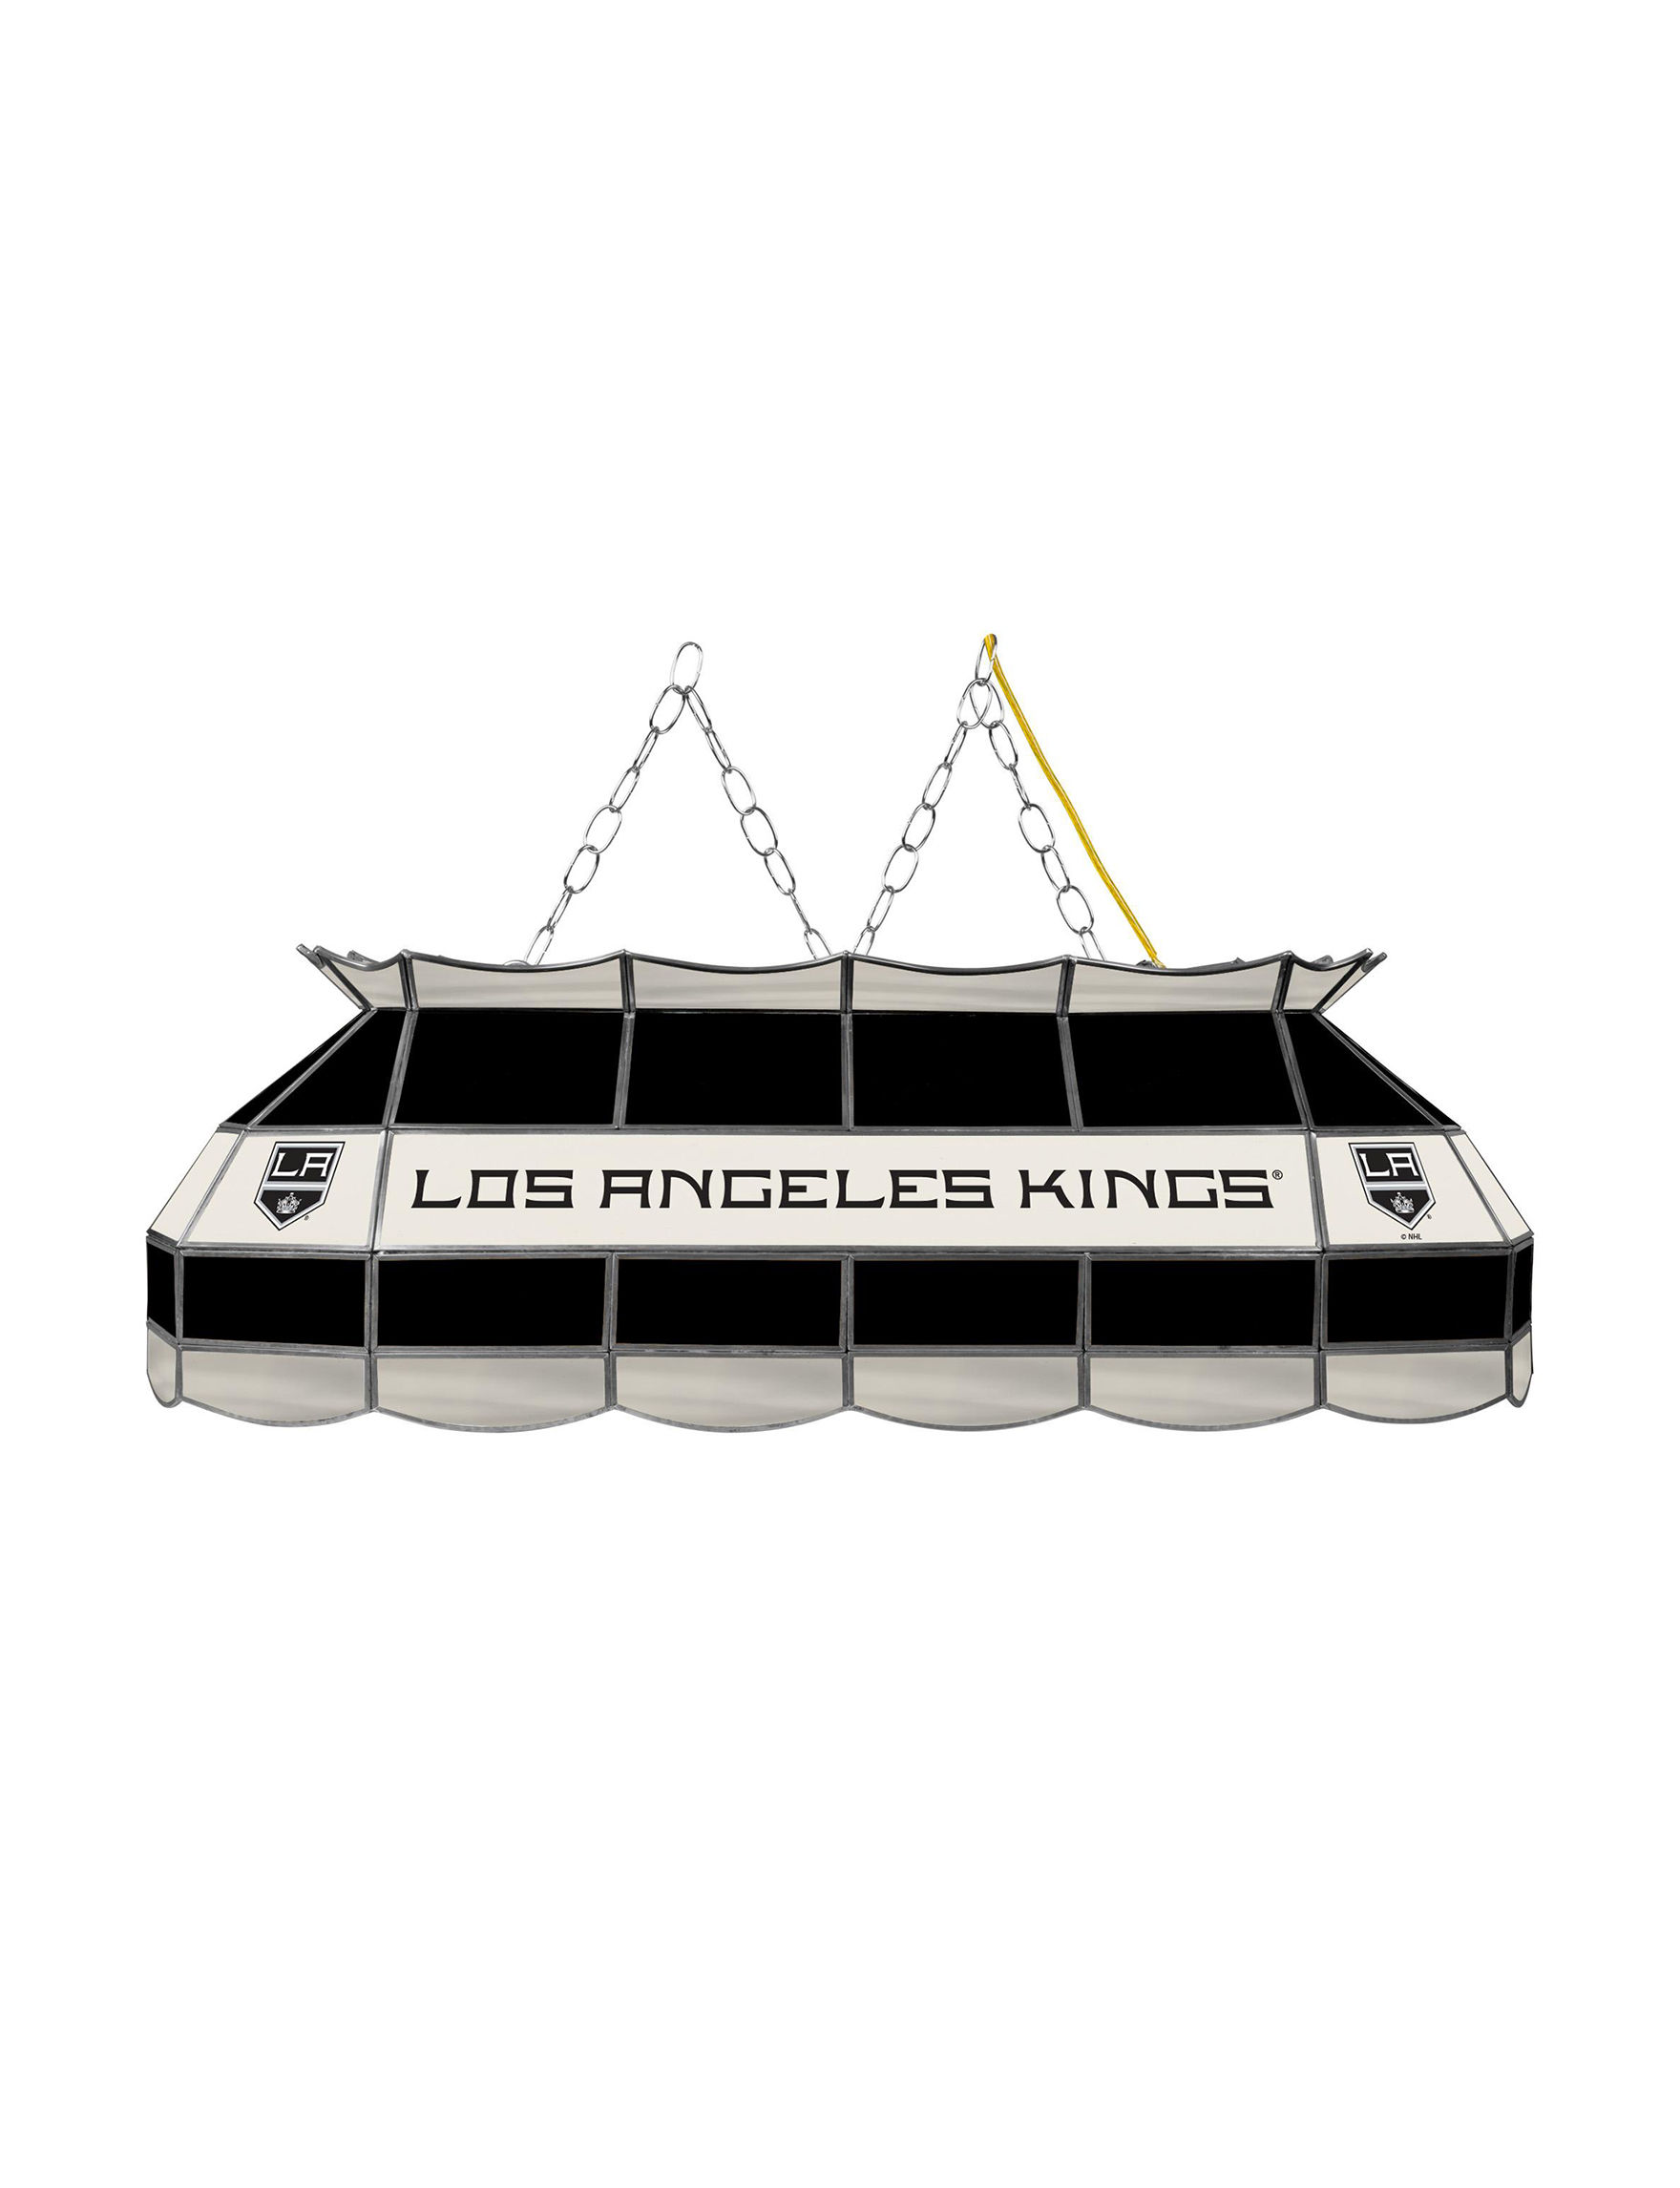 NHL Black / Silver / White Chandeliers Table Lamps Lighting & Lamps